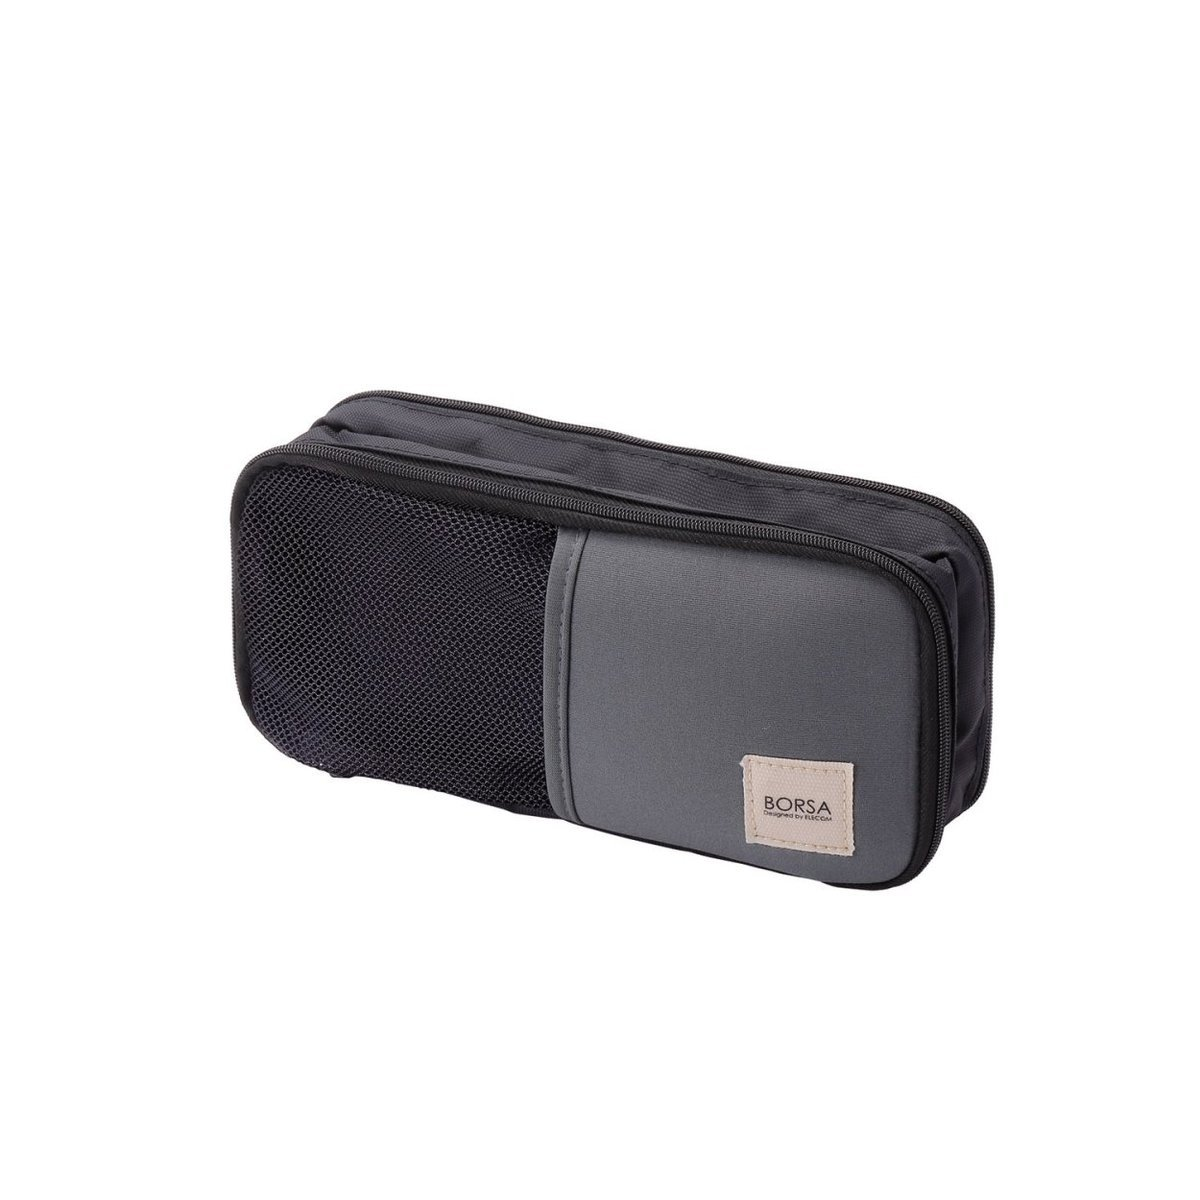 Multi-storing porch which gadgets such as portable power charger or cable (Black)